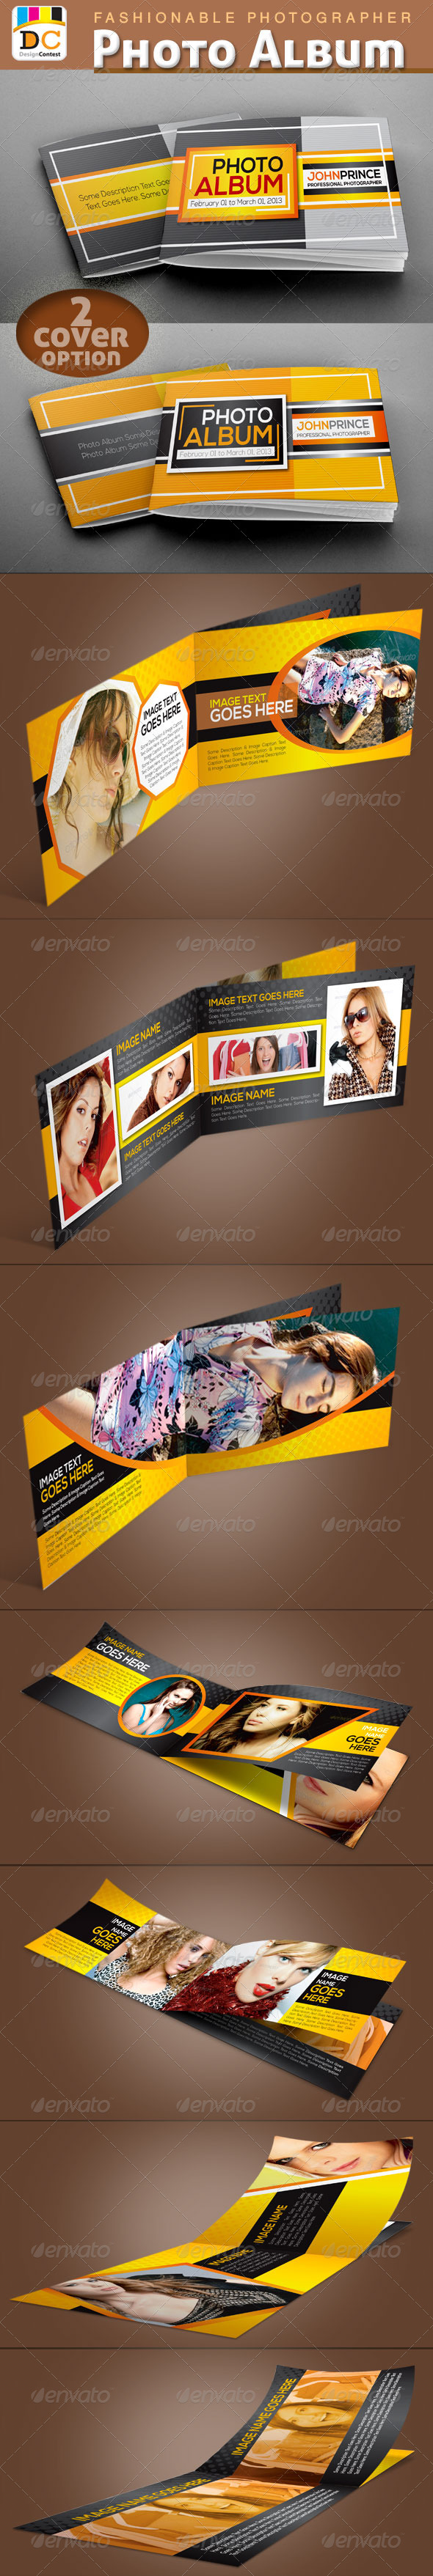 Fashionable Photographer Photo Album  - Photo Albums Print Templates